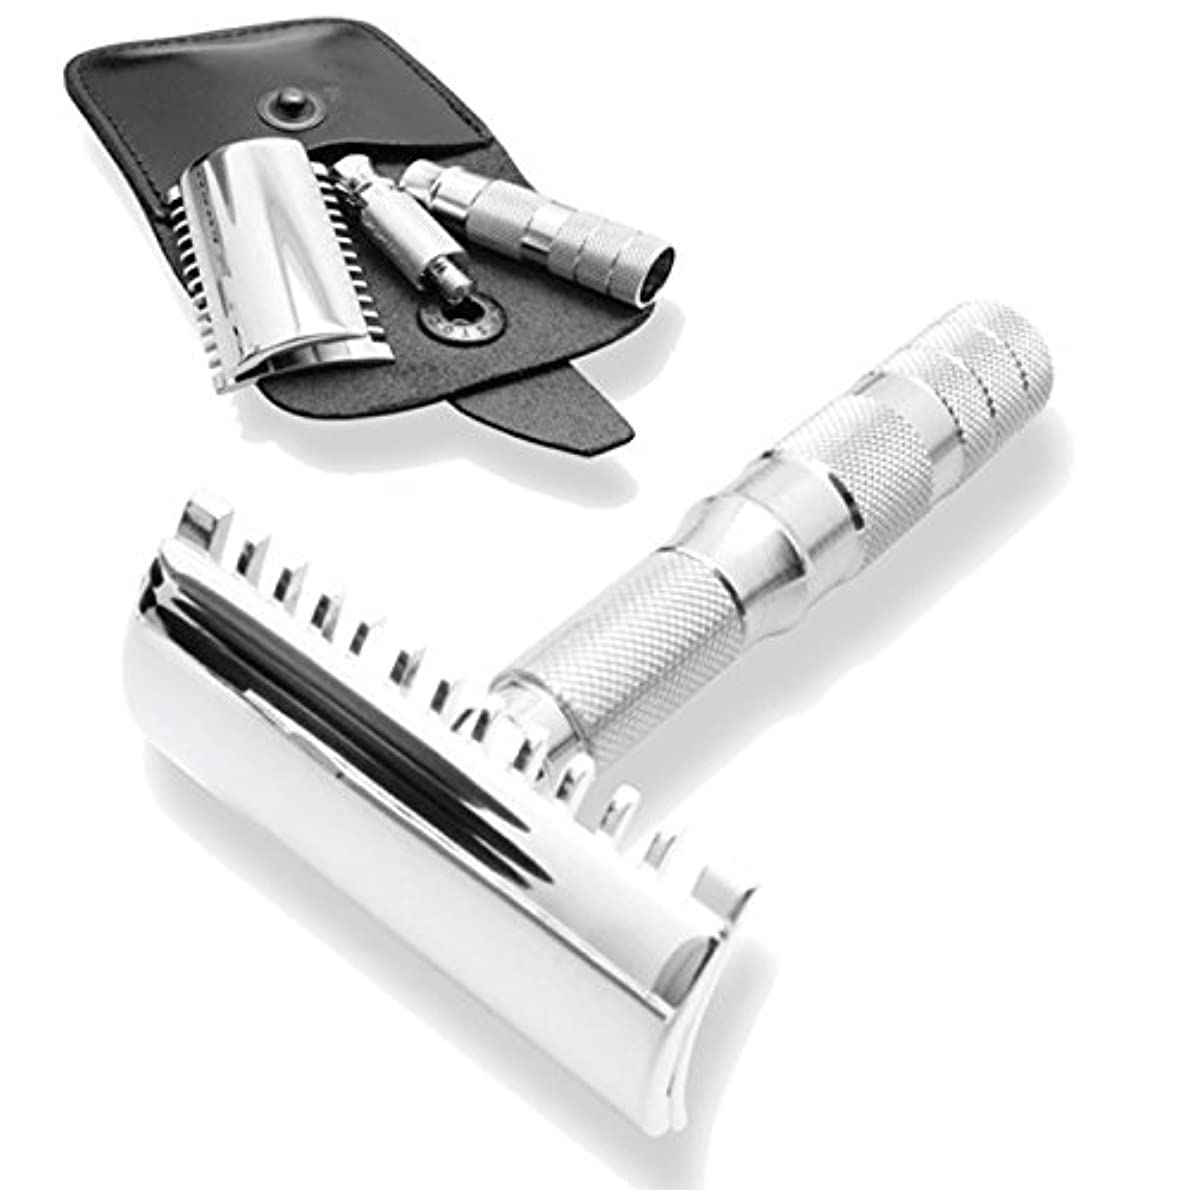 アンデス山脈嵐が丘狂ったMerkur & Dovo Open Tooth Comb Travel Razor